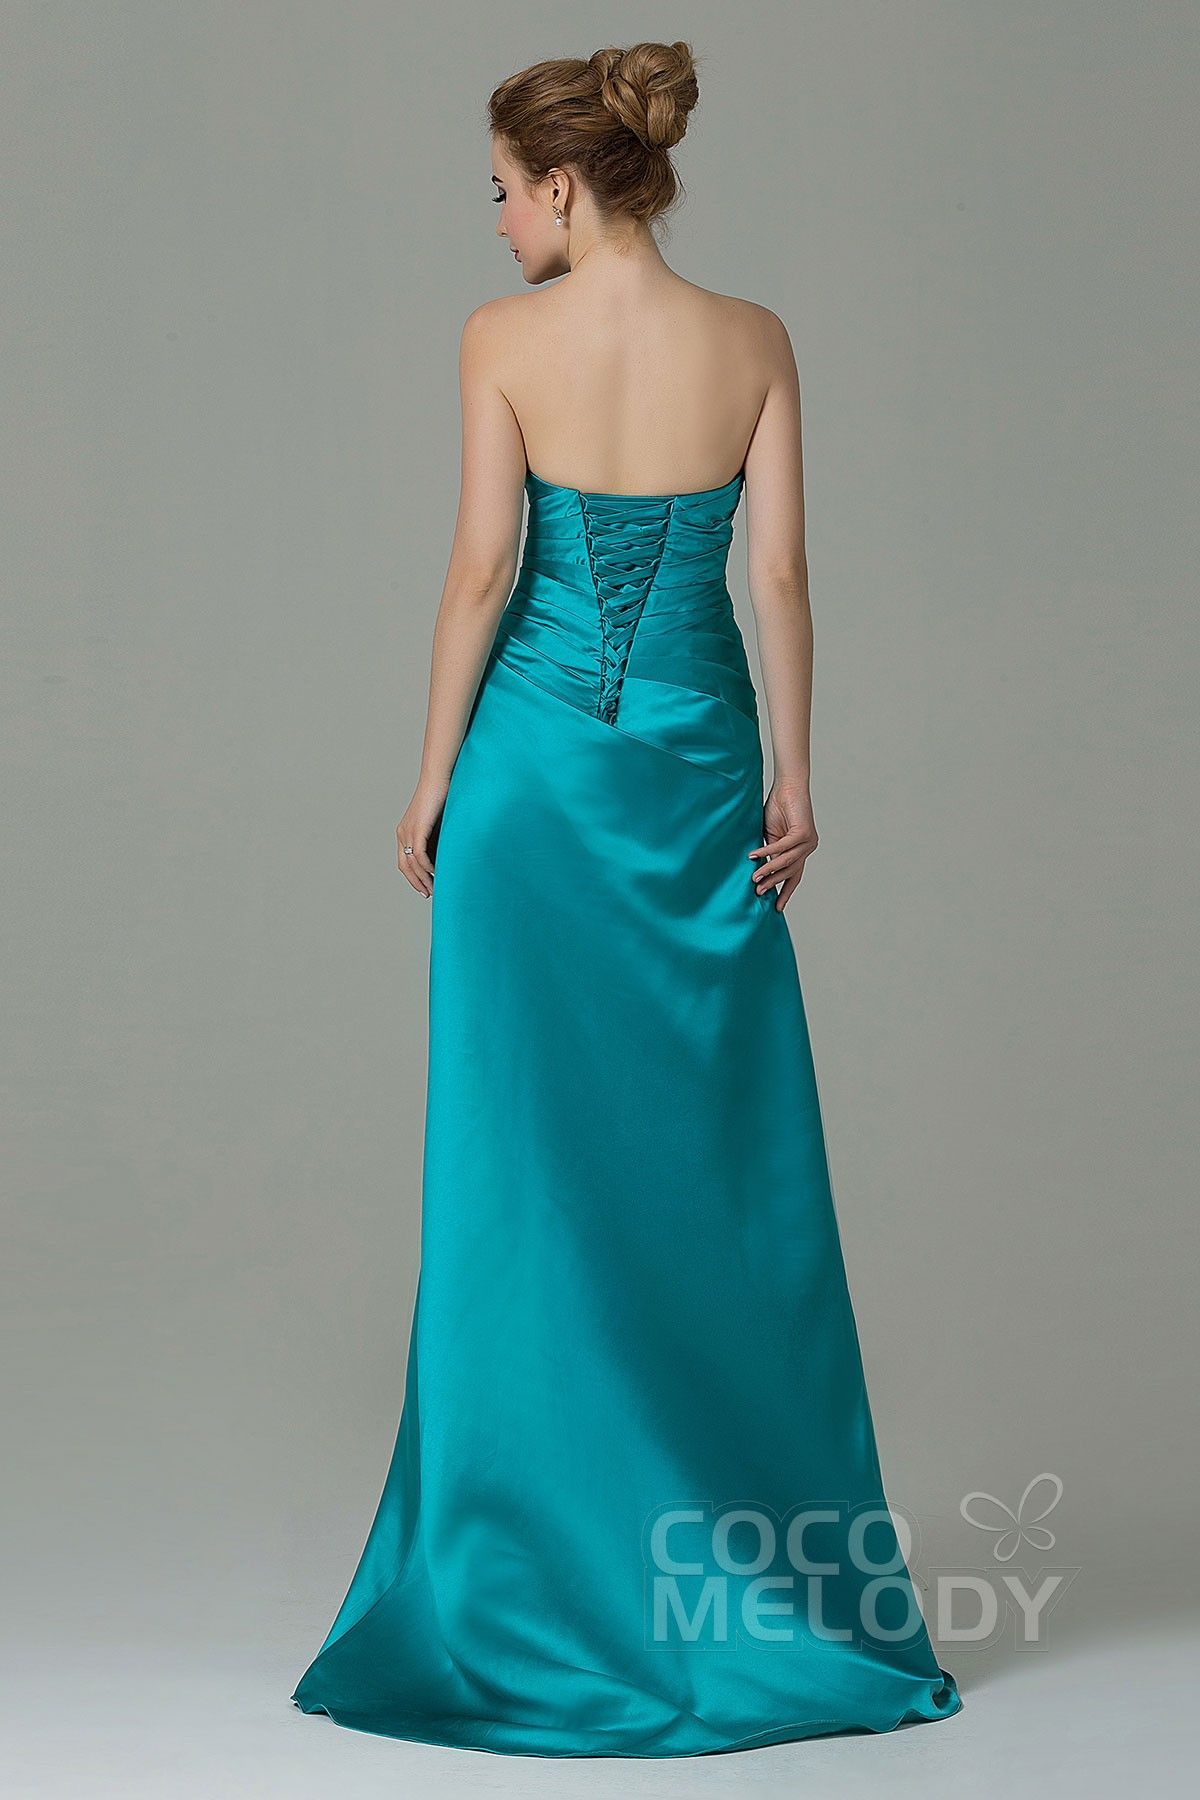 Queenly sheath column strapless natural floor length satin queenly sheath column strapless natural floor length satin blue turquoise sleeveless lace up corset bridesmaid dress with pleating ombrellifo Image collections